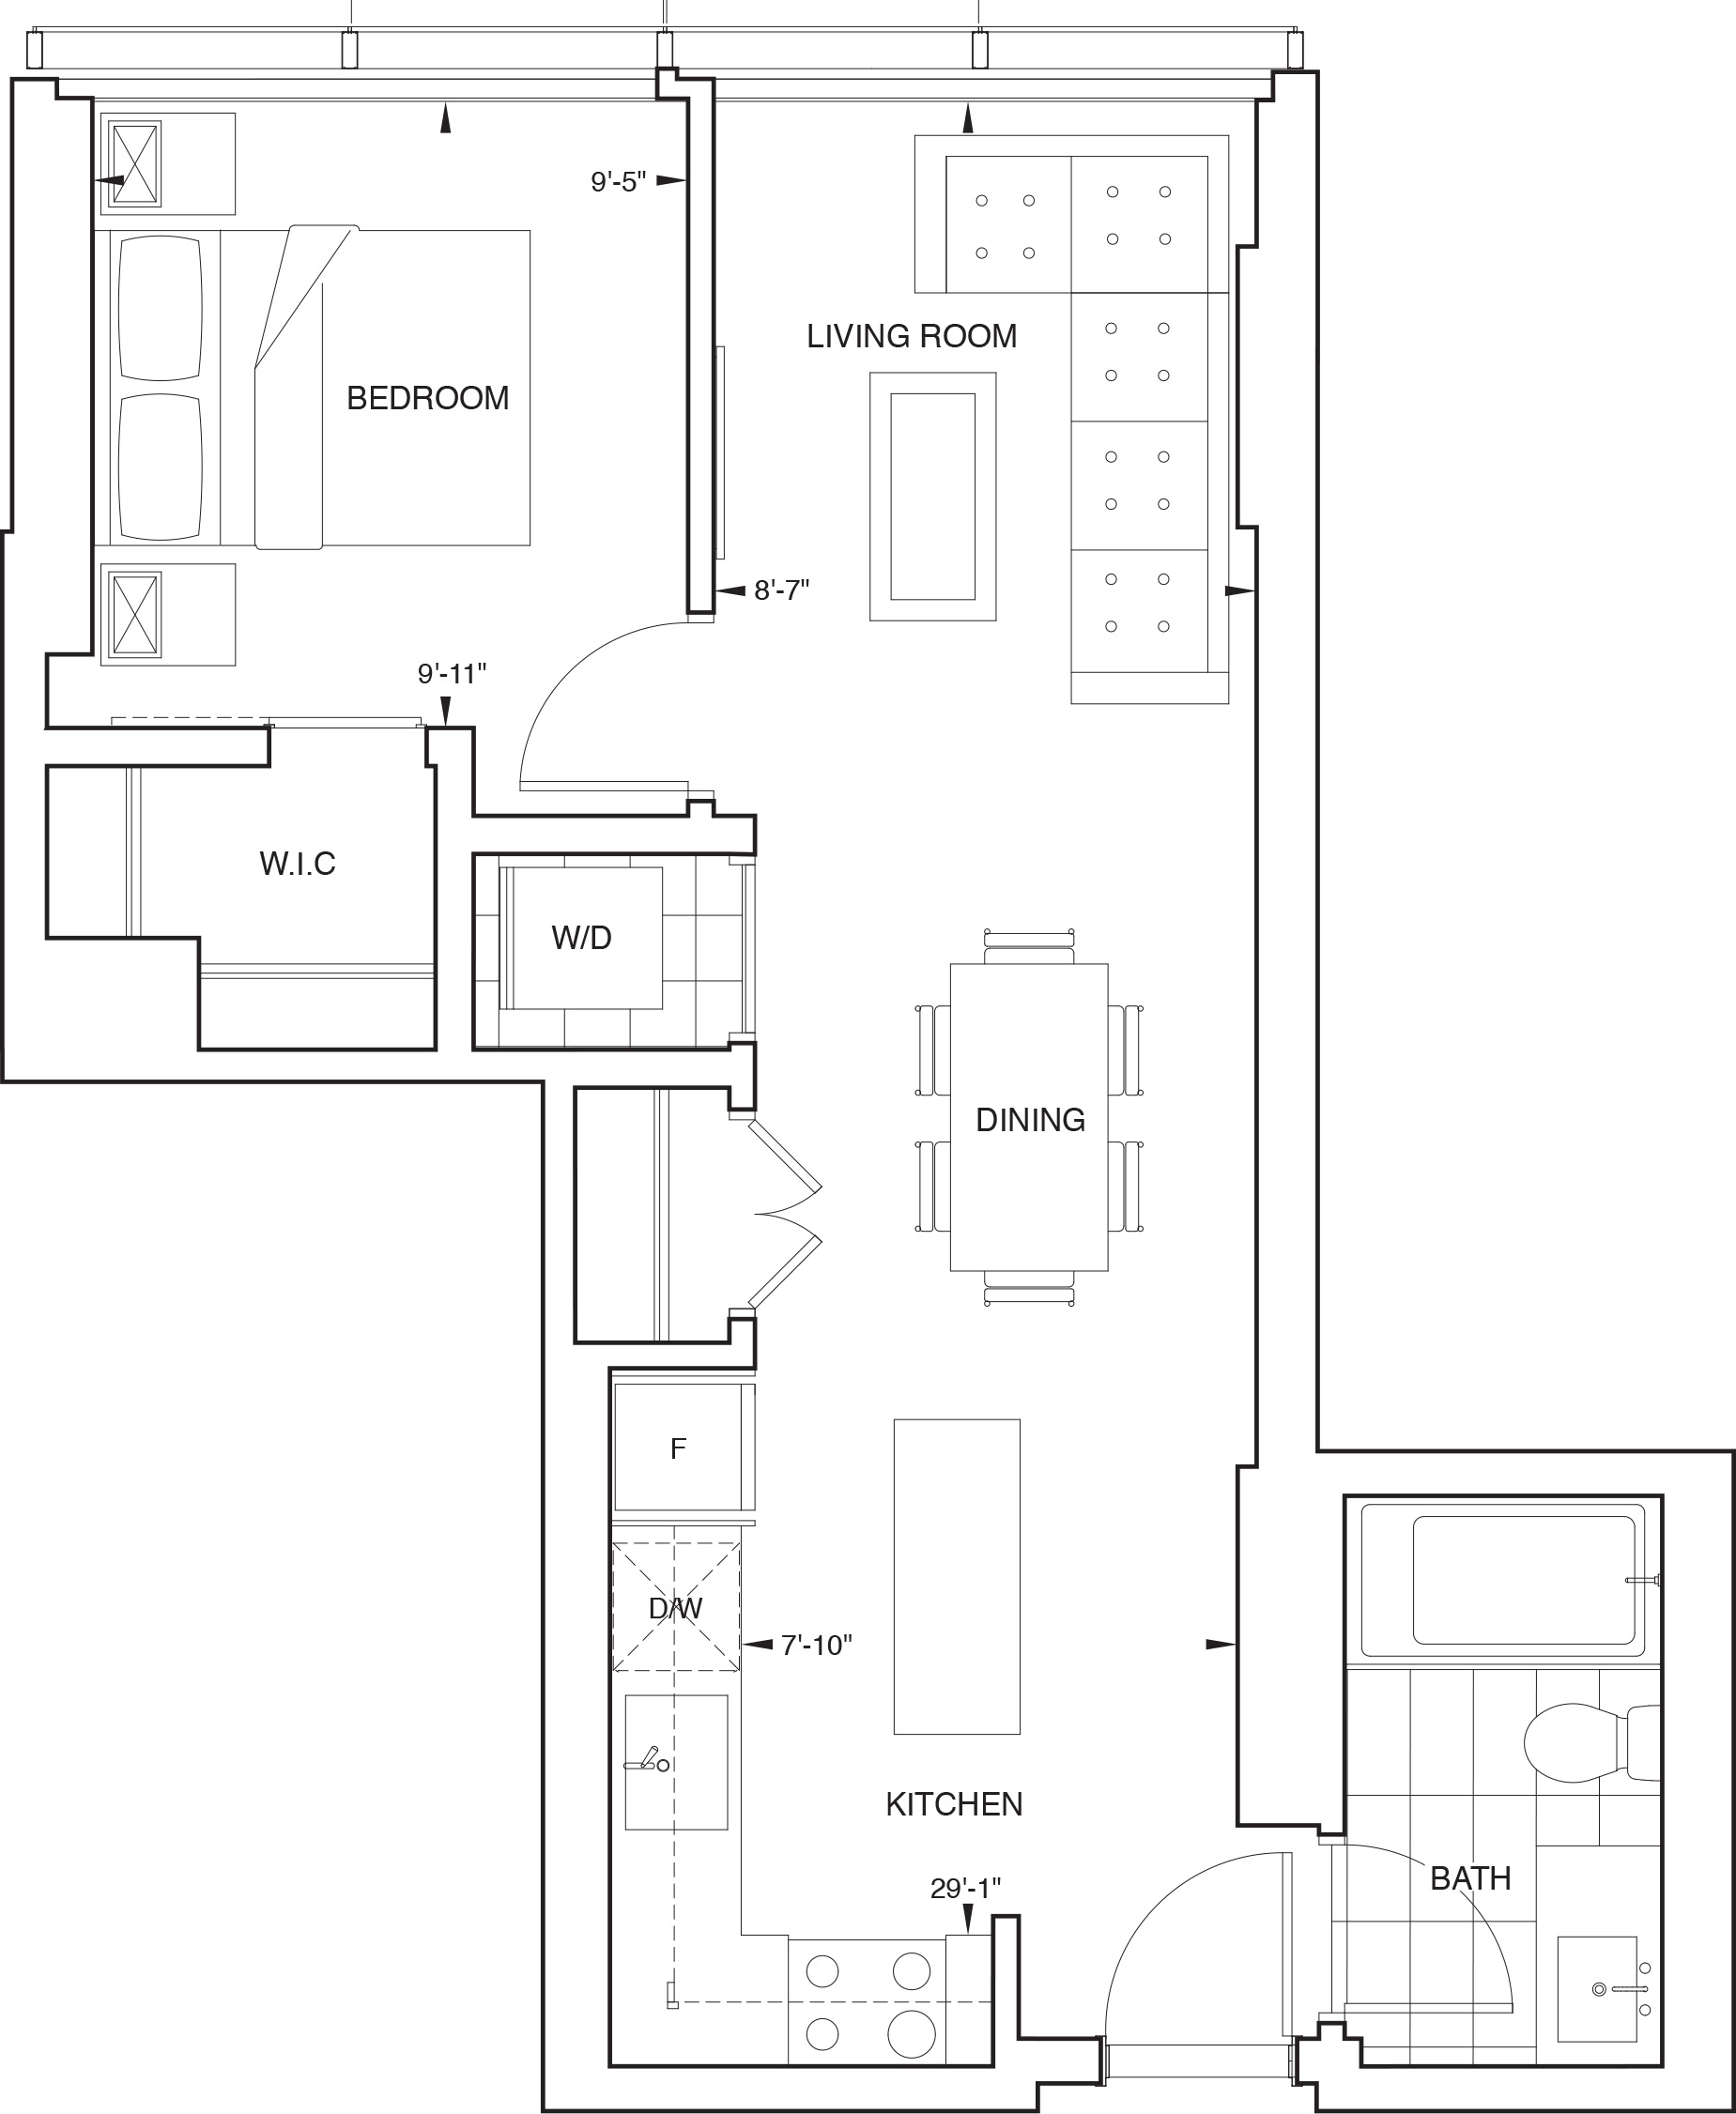 Floorplan for SKY Residence F